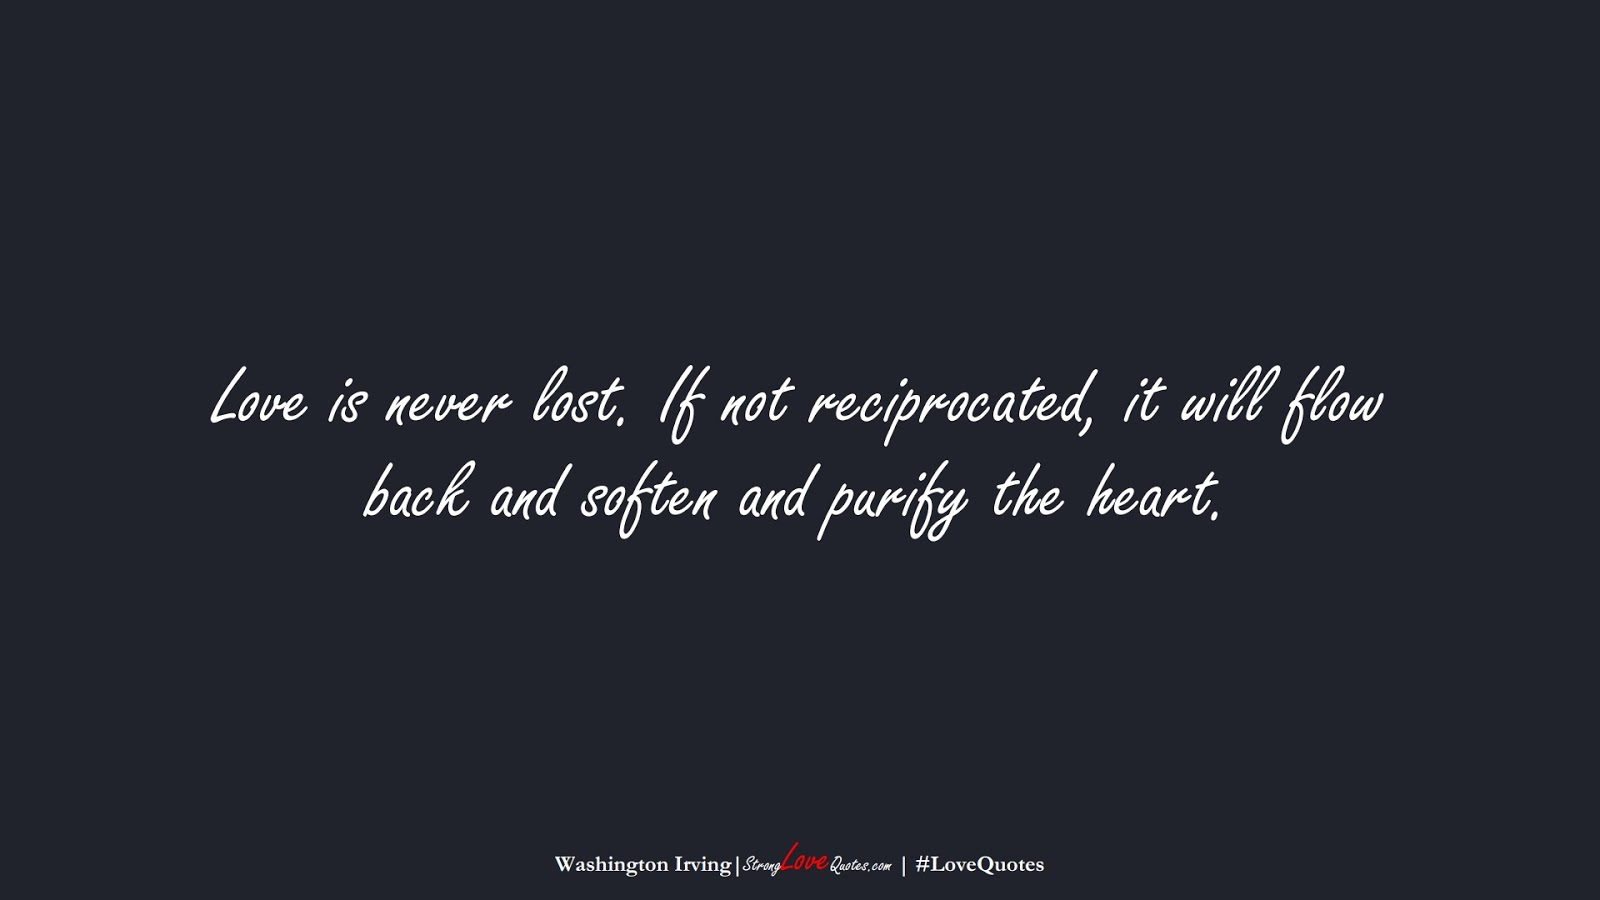 Love is never lost. If not reciprocated, it will flow back and soften and purify the heart. (Washington Irving);  #LoveQuotes